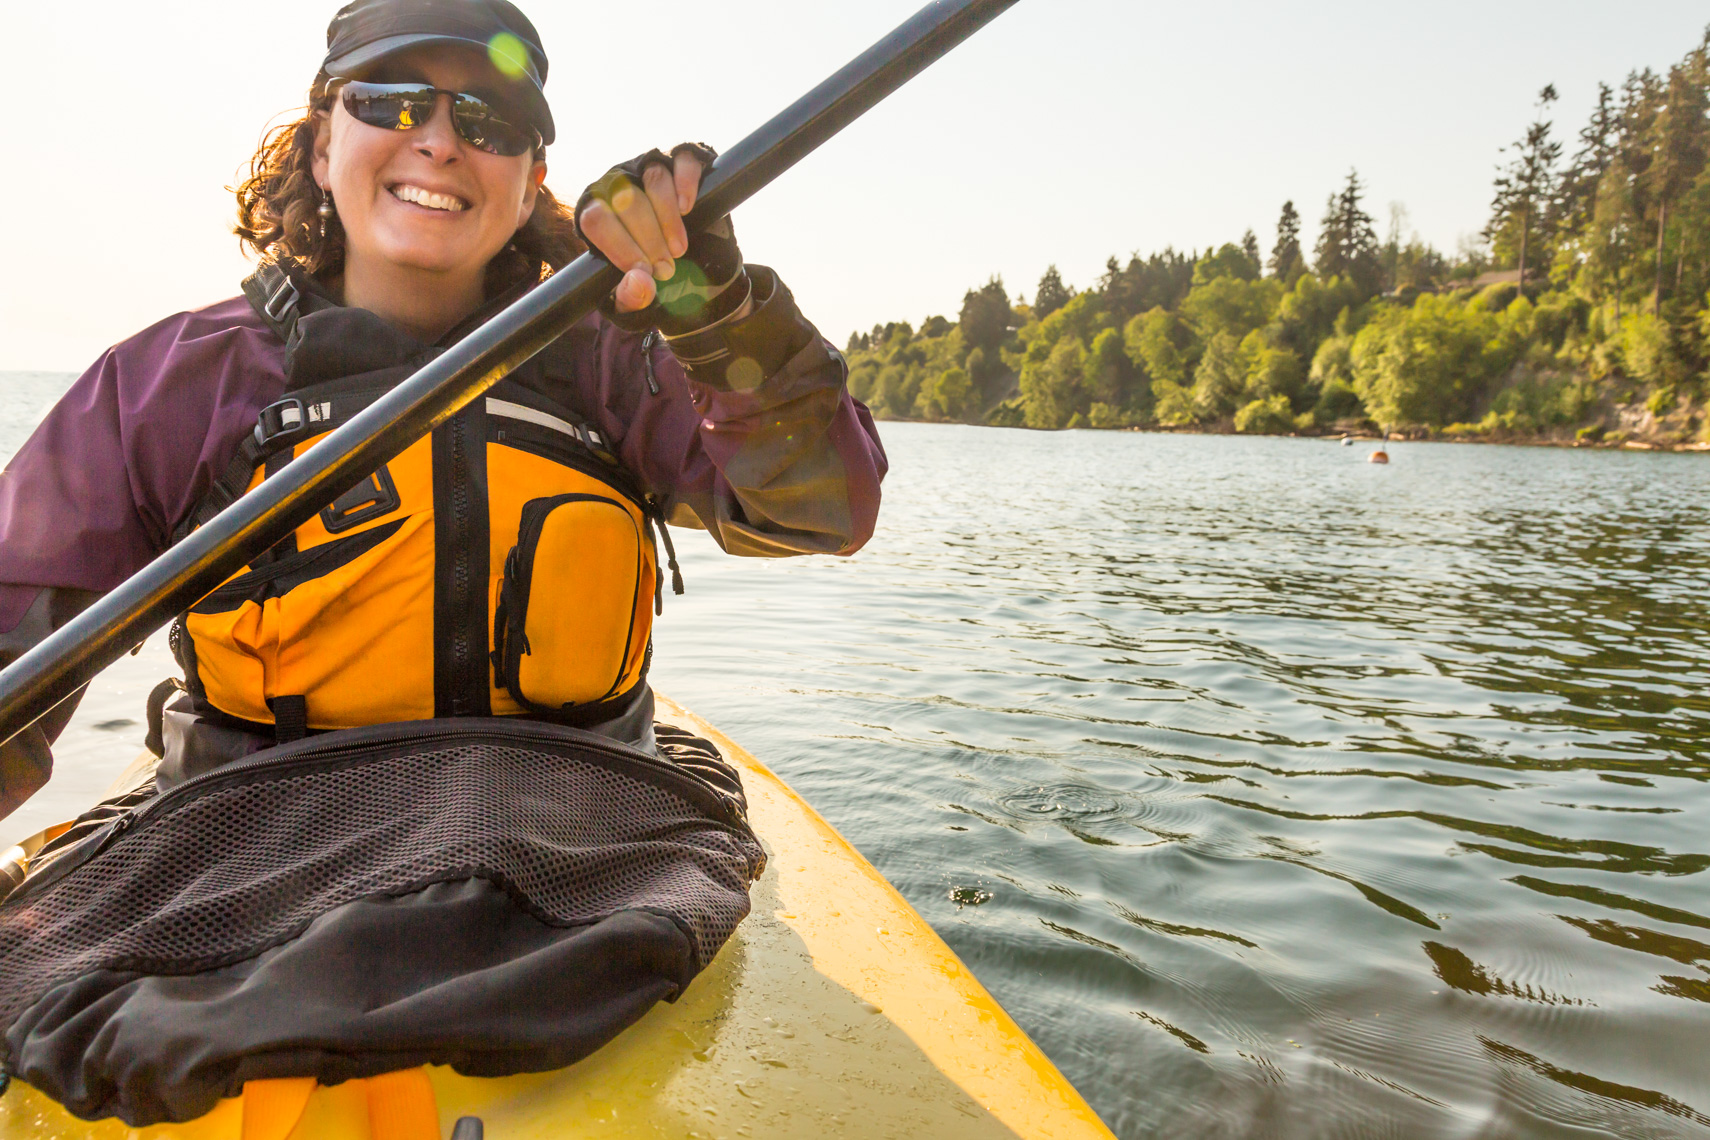 Happy, smiling, confident, healthy, middle aged woman wearing sunglasses and a life jacket sea kayaking. Active summer outdoor adventure water sports lifestyle.